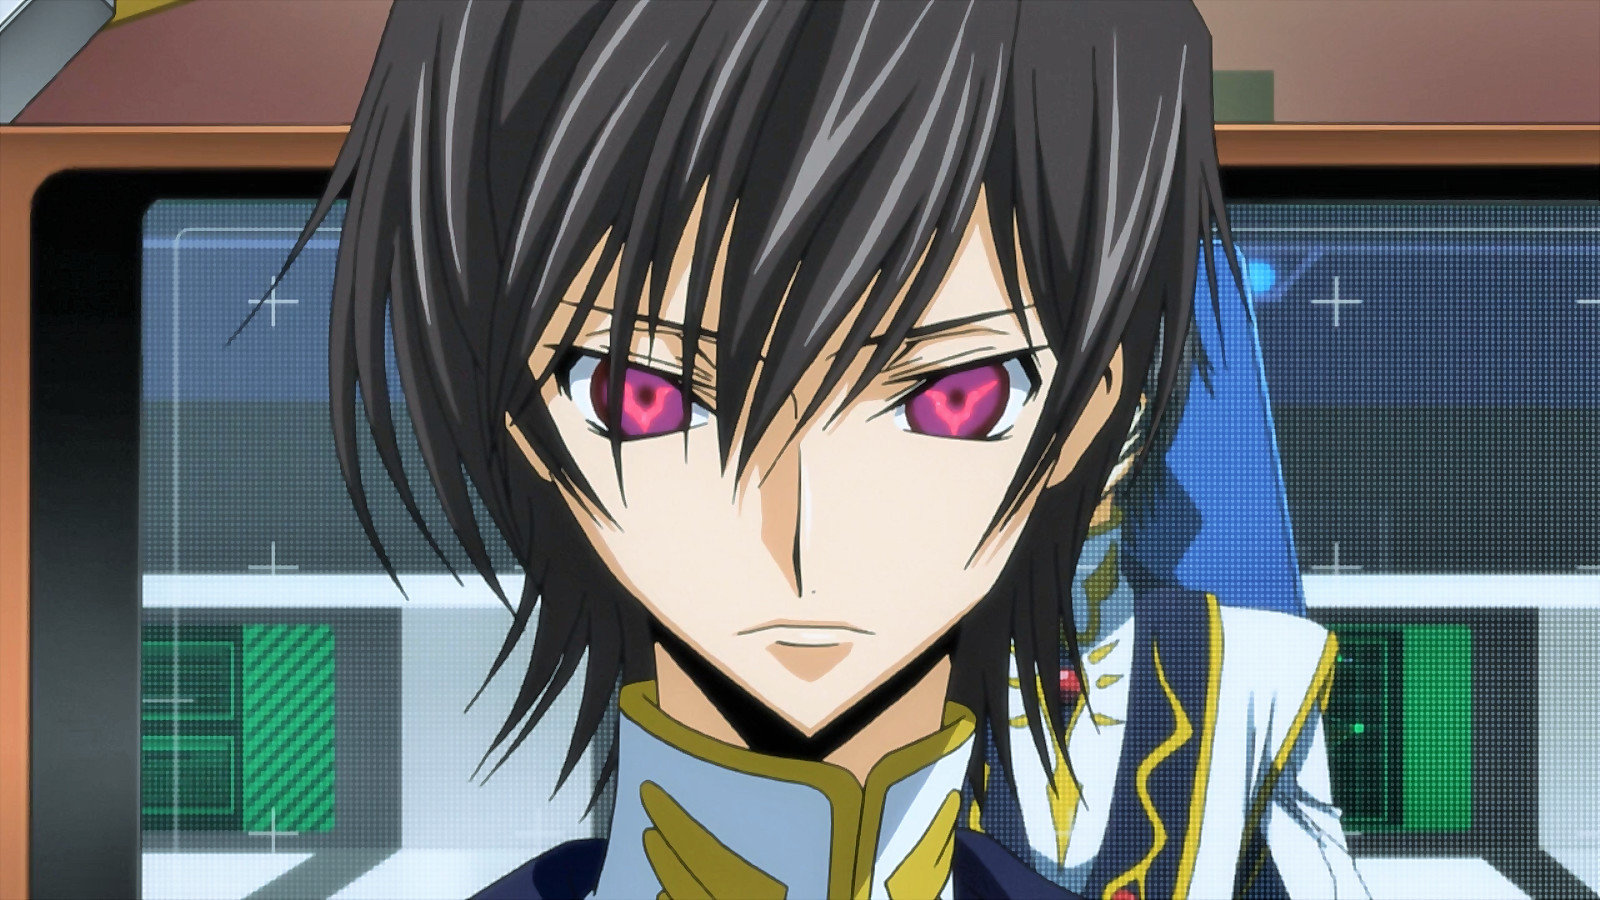 High resolution Lelouch Lamperouge hd 1600x900 wallpaper ID:43999 for computer